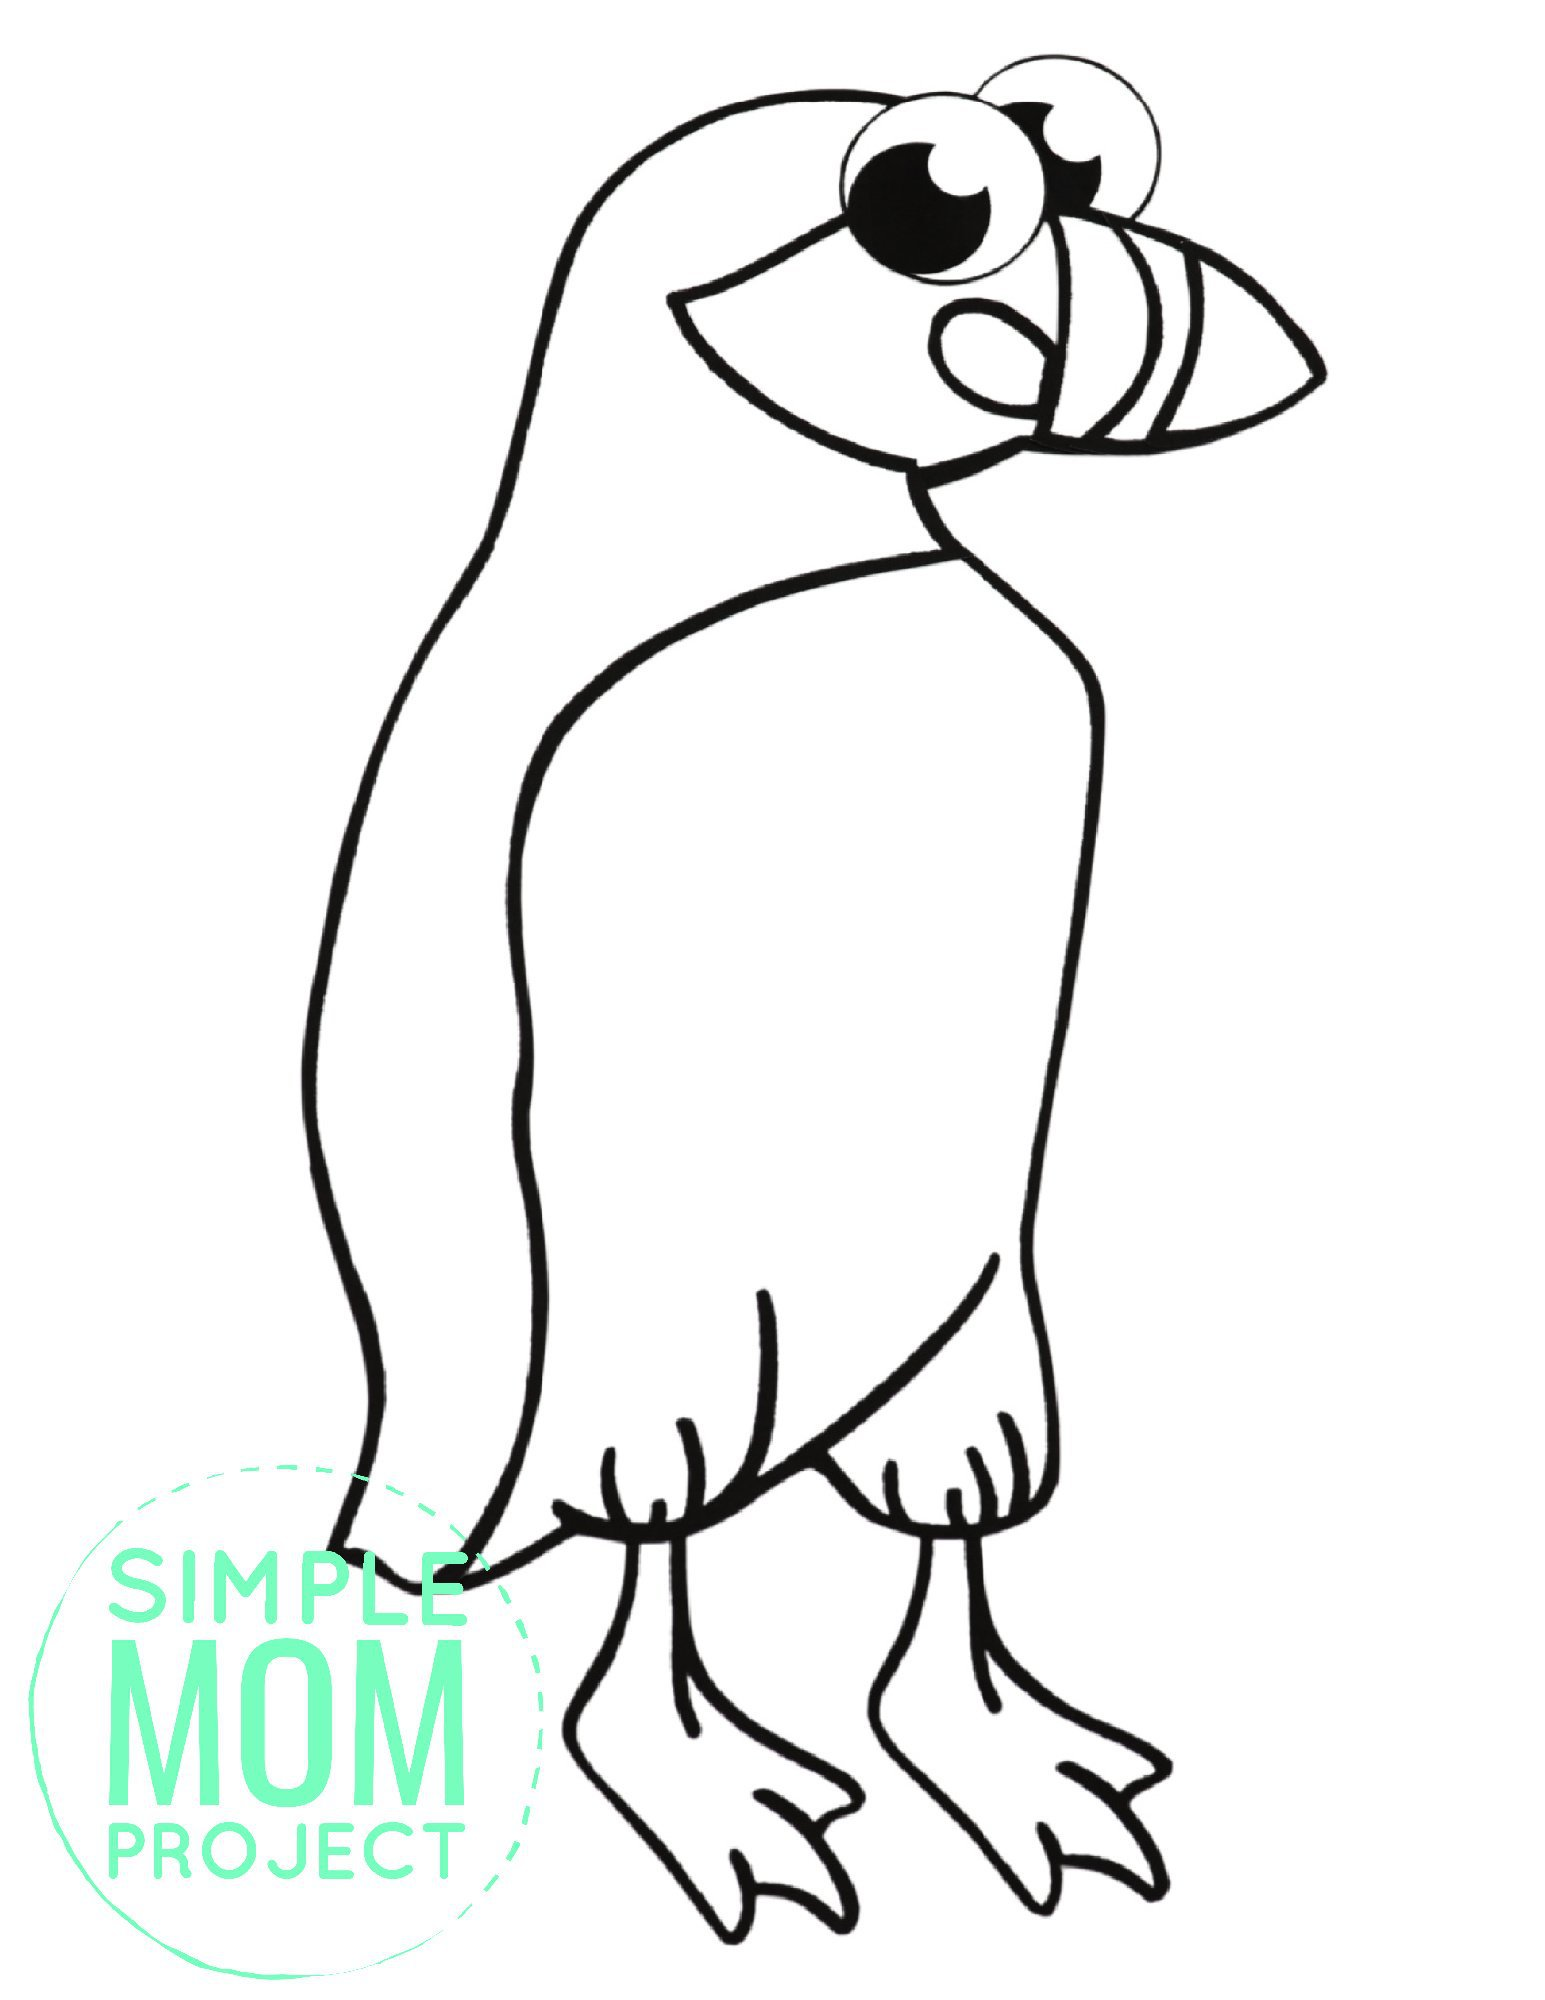 Free Printable Simple Arctic Animal Puffin Coloring Page for kids preschoolers and toddlers